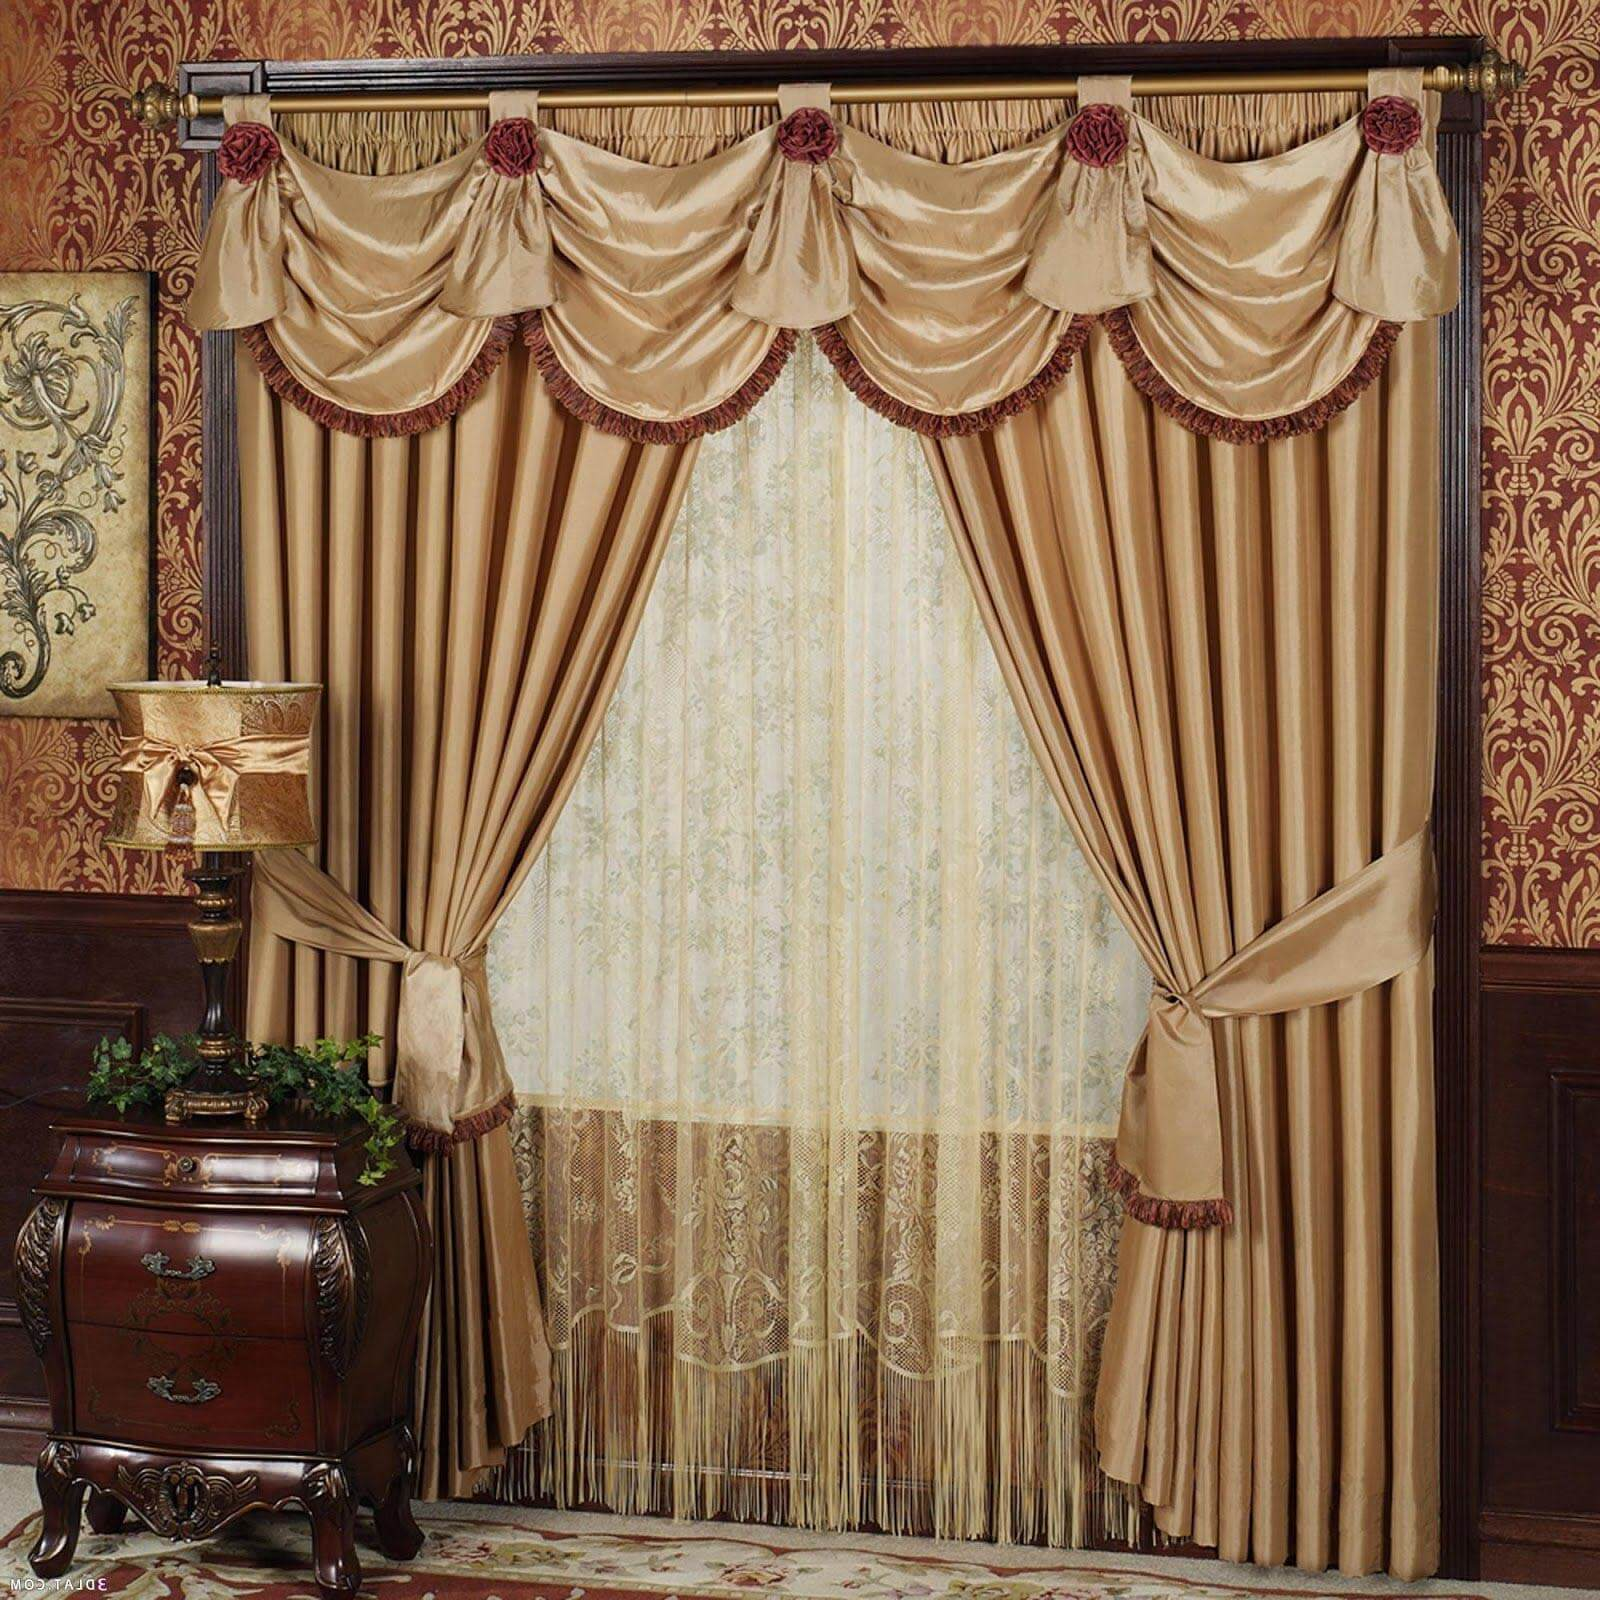 22 Picturesque Curtains and Drape Ideas To Enhance Your ... on Draping Curtains Ideas  id=18497